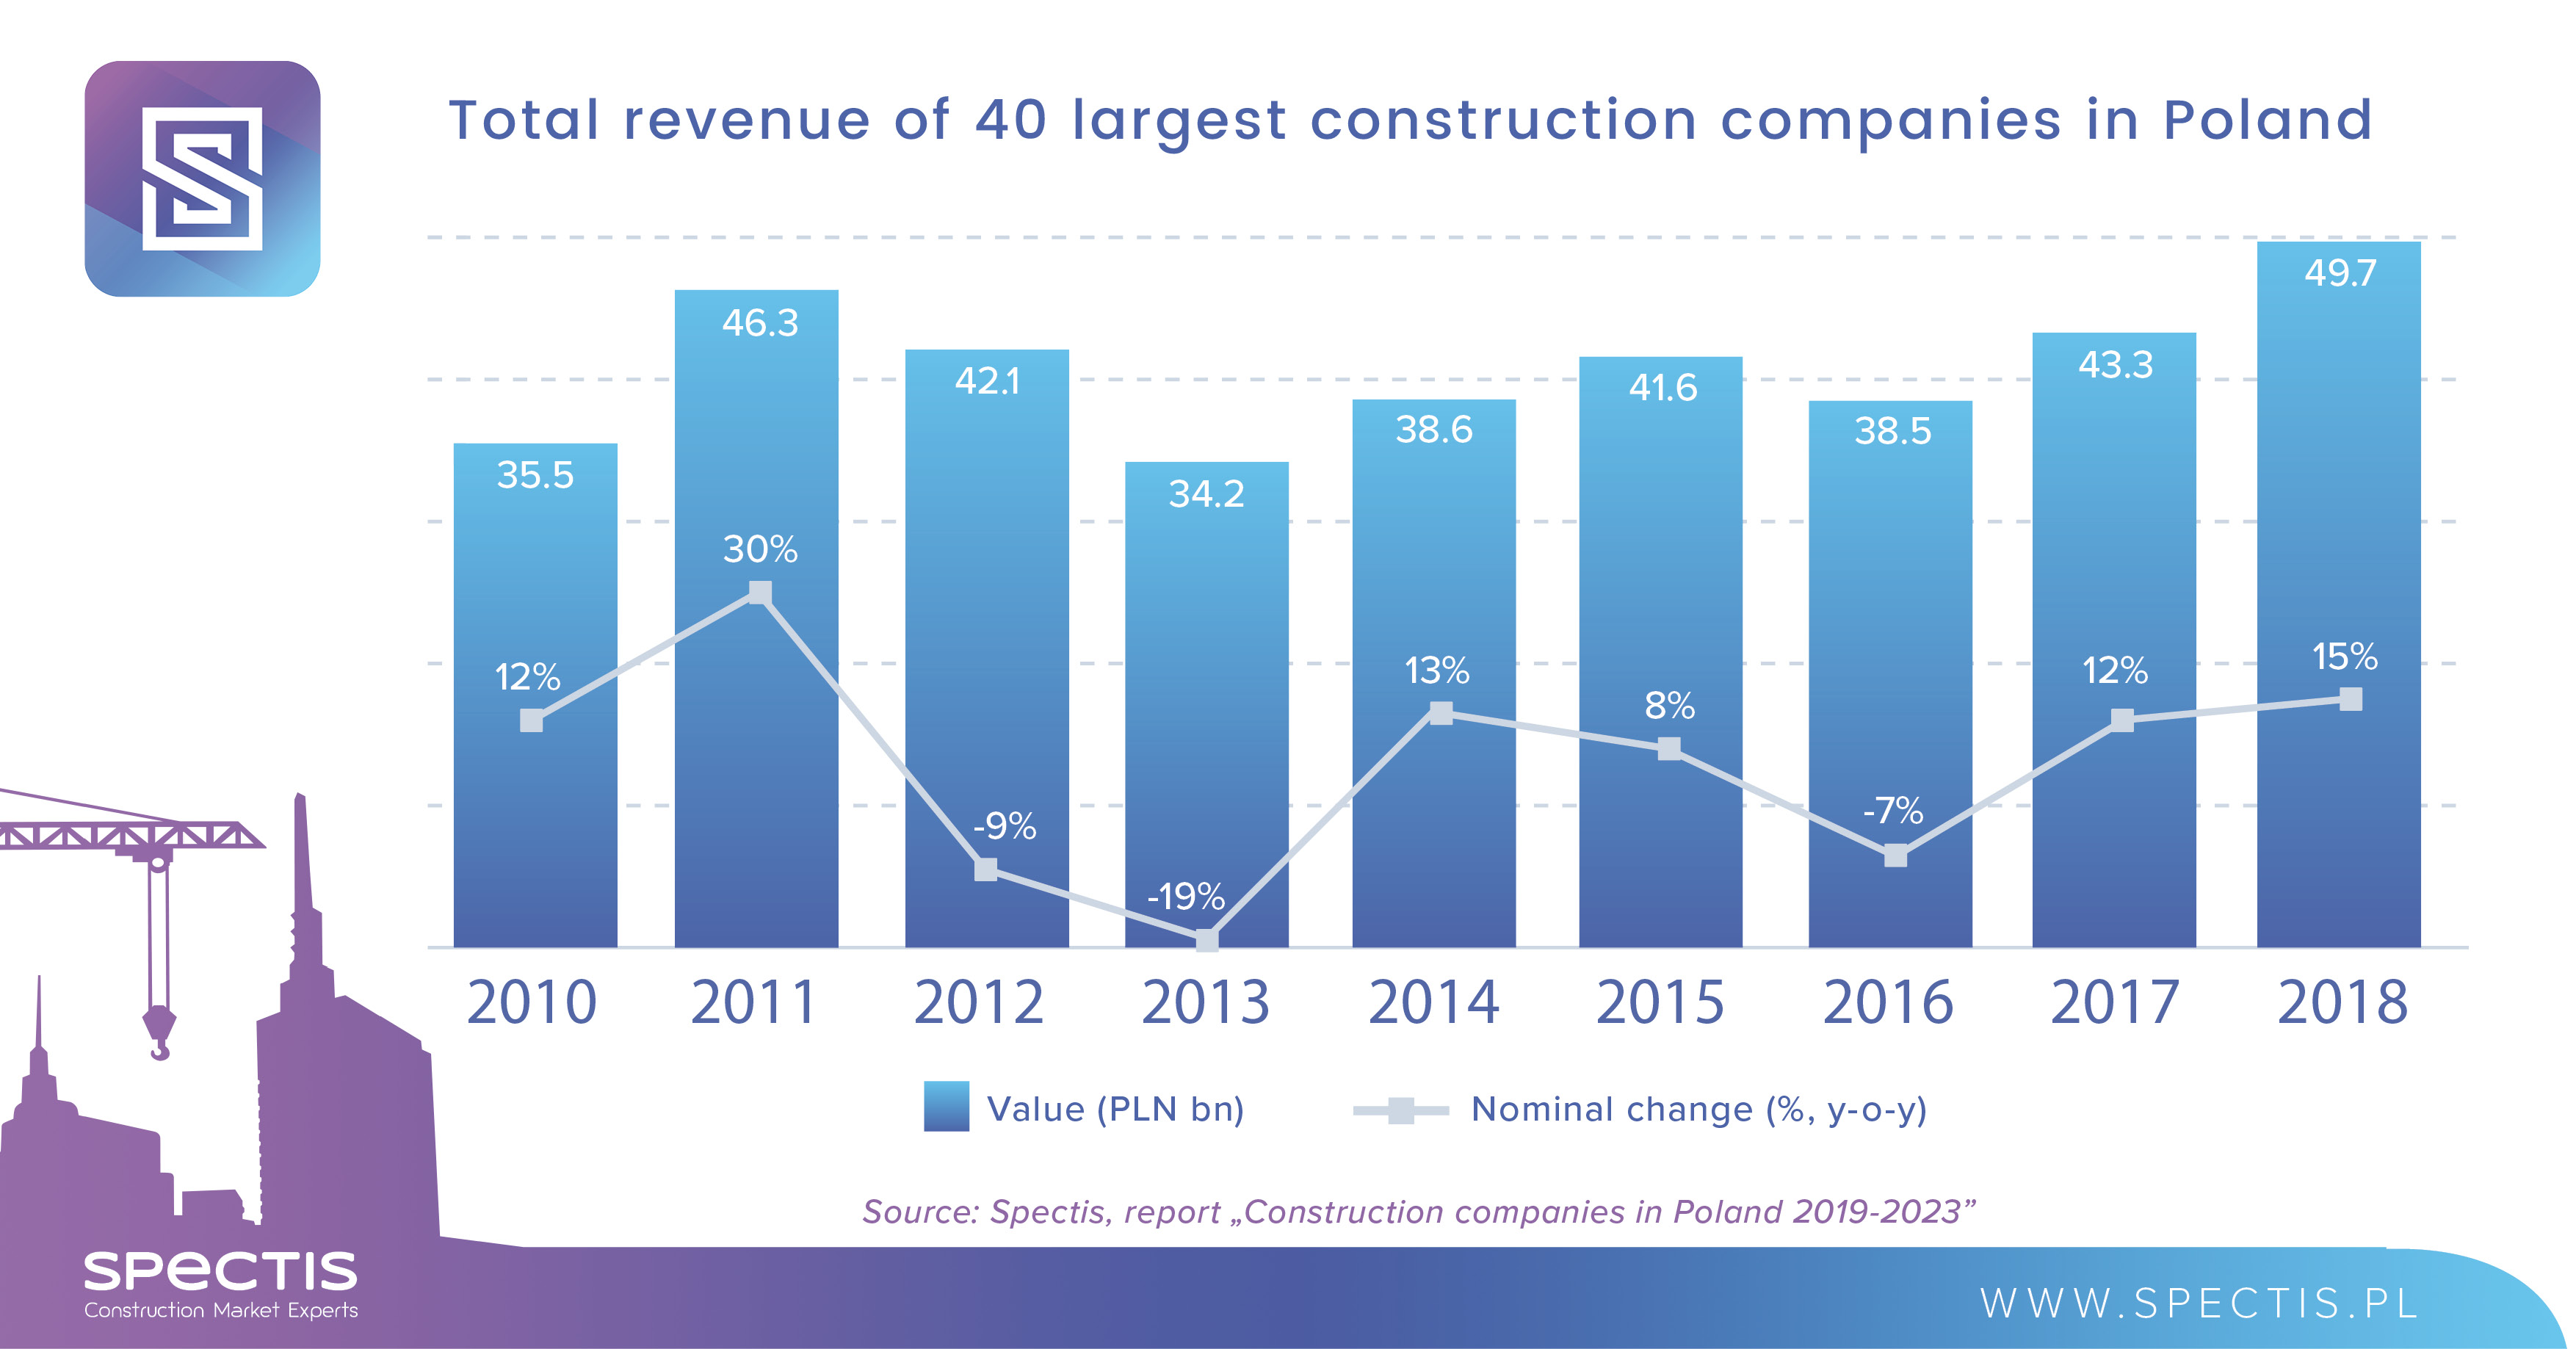 40 largest construction companies in Poland post a record PLN 50bn in revenue